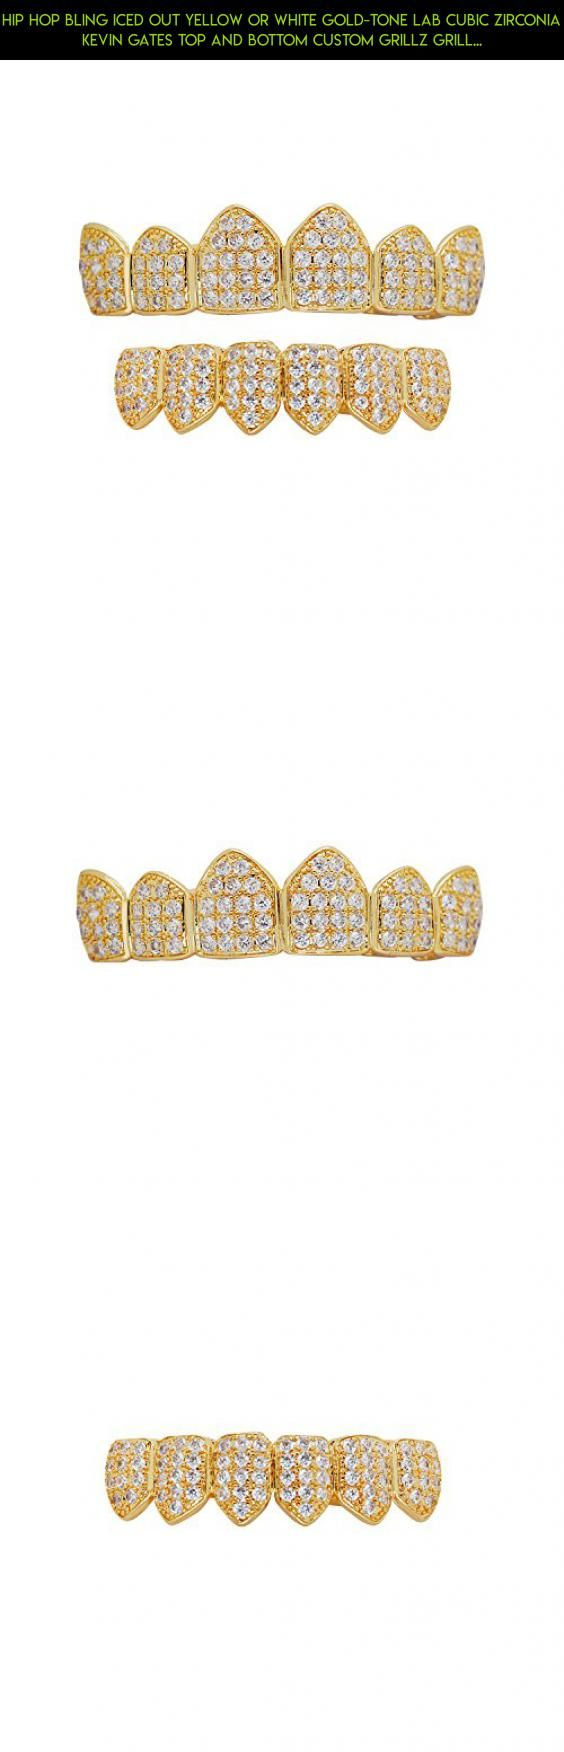 Hip Hop Bling Iced Out Yellow or White Gold-Tone Lab Cubic Zirconia Kevin Gates Top and Bottom Custom Grillz Grill with Mold Bar (yellow-gold-tone) #grills #kit #gadgets #diamond #tech #fpv #teeth #shopping #technology #racing #camera #plans #drone #parts #products